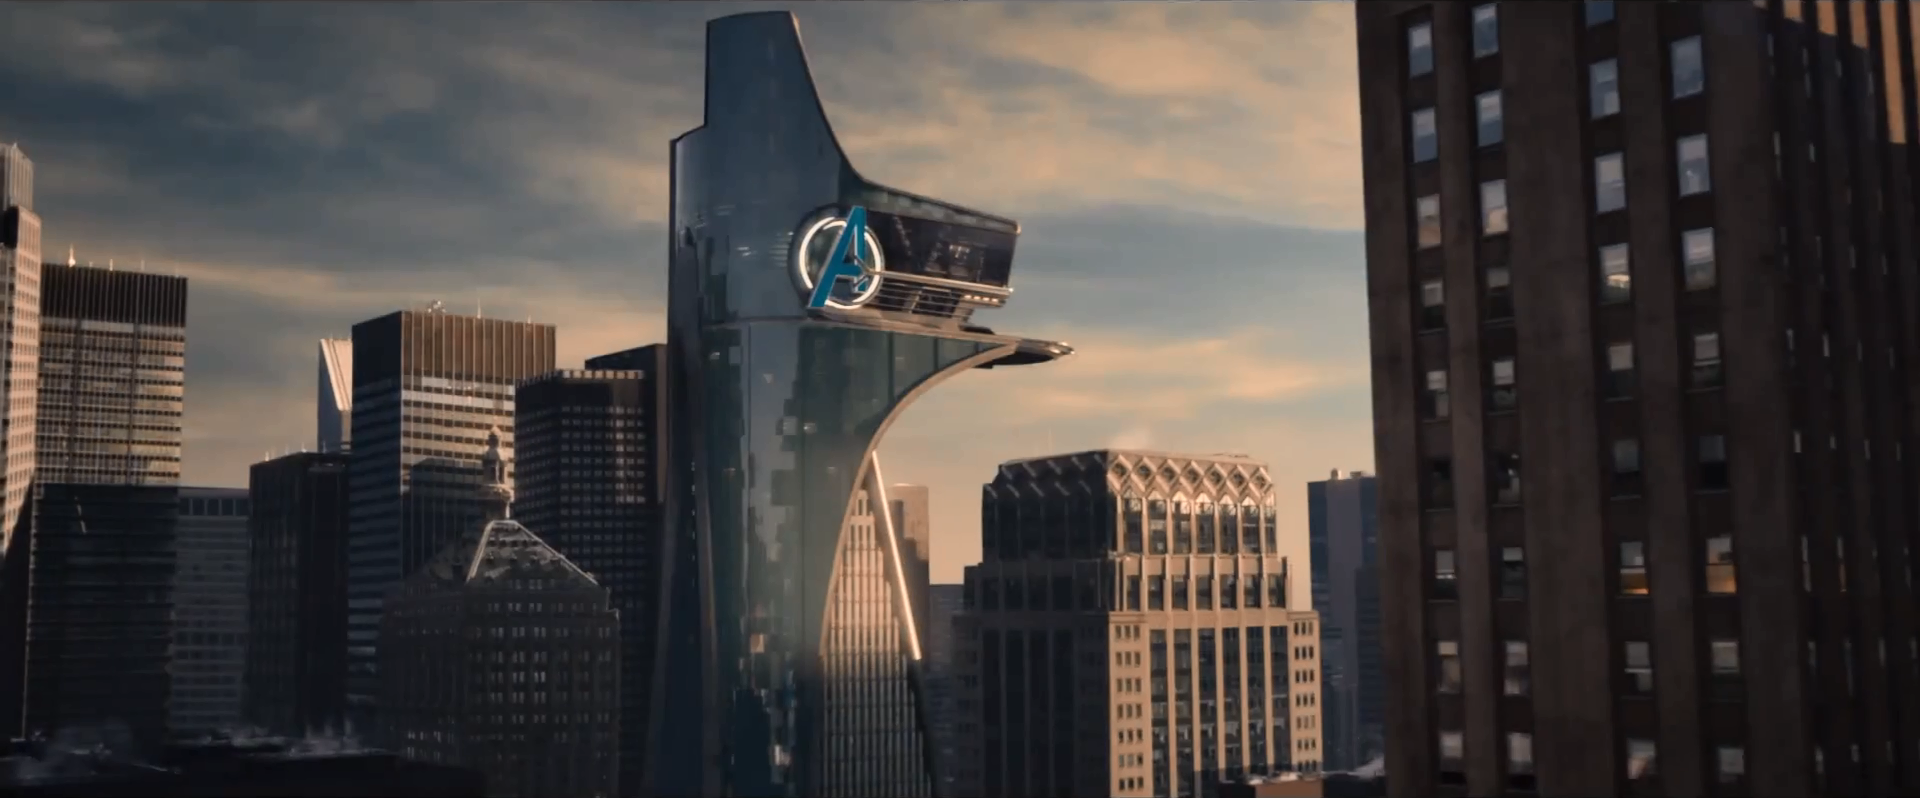 Avengers Tower ... Oscorp Tower In Iron Man 3